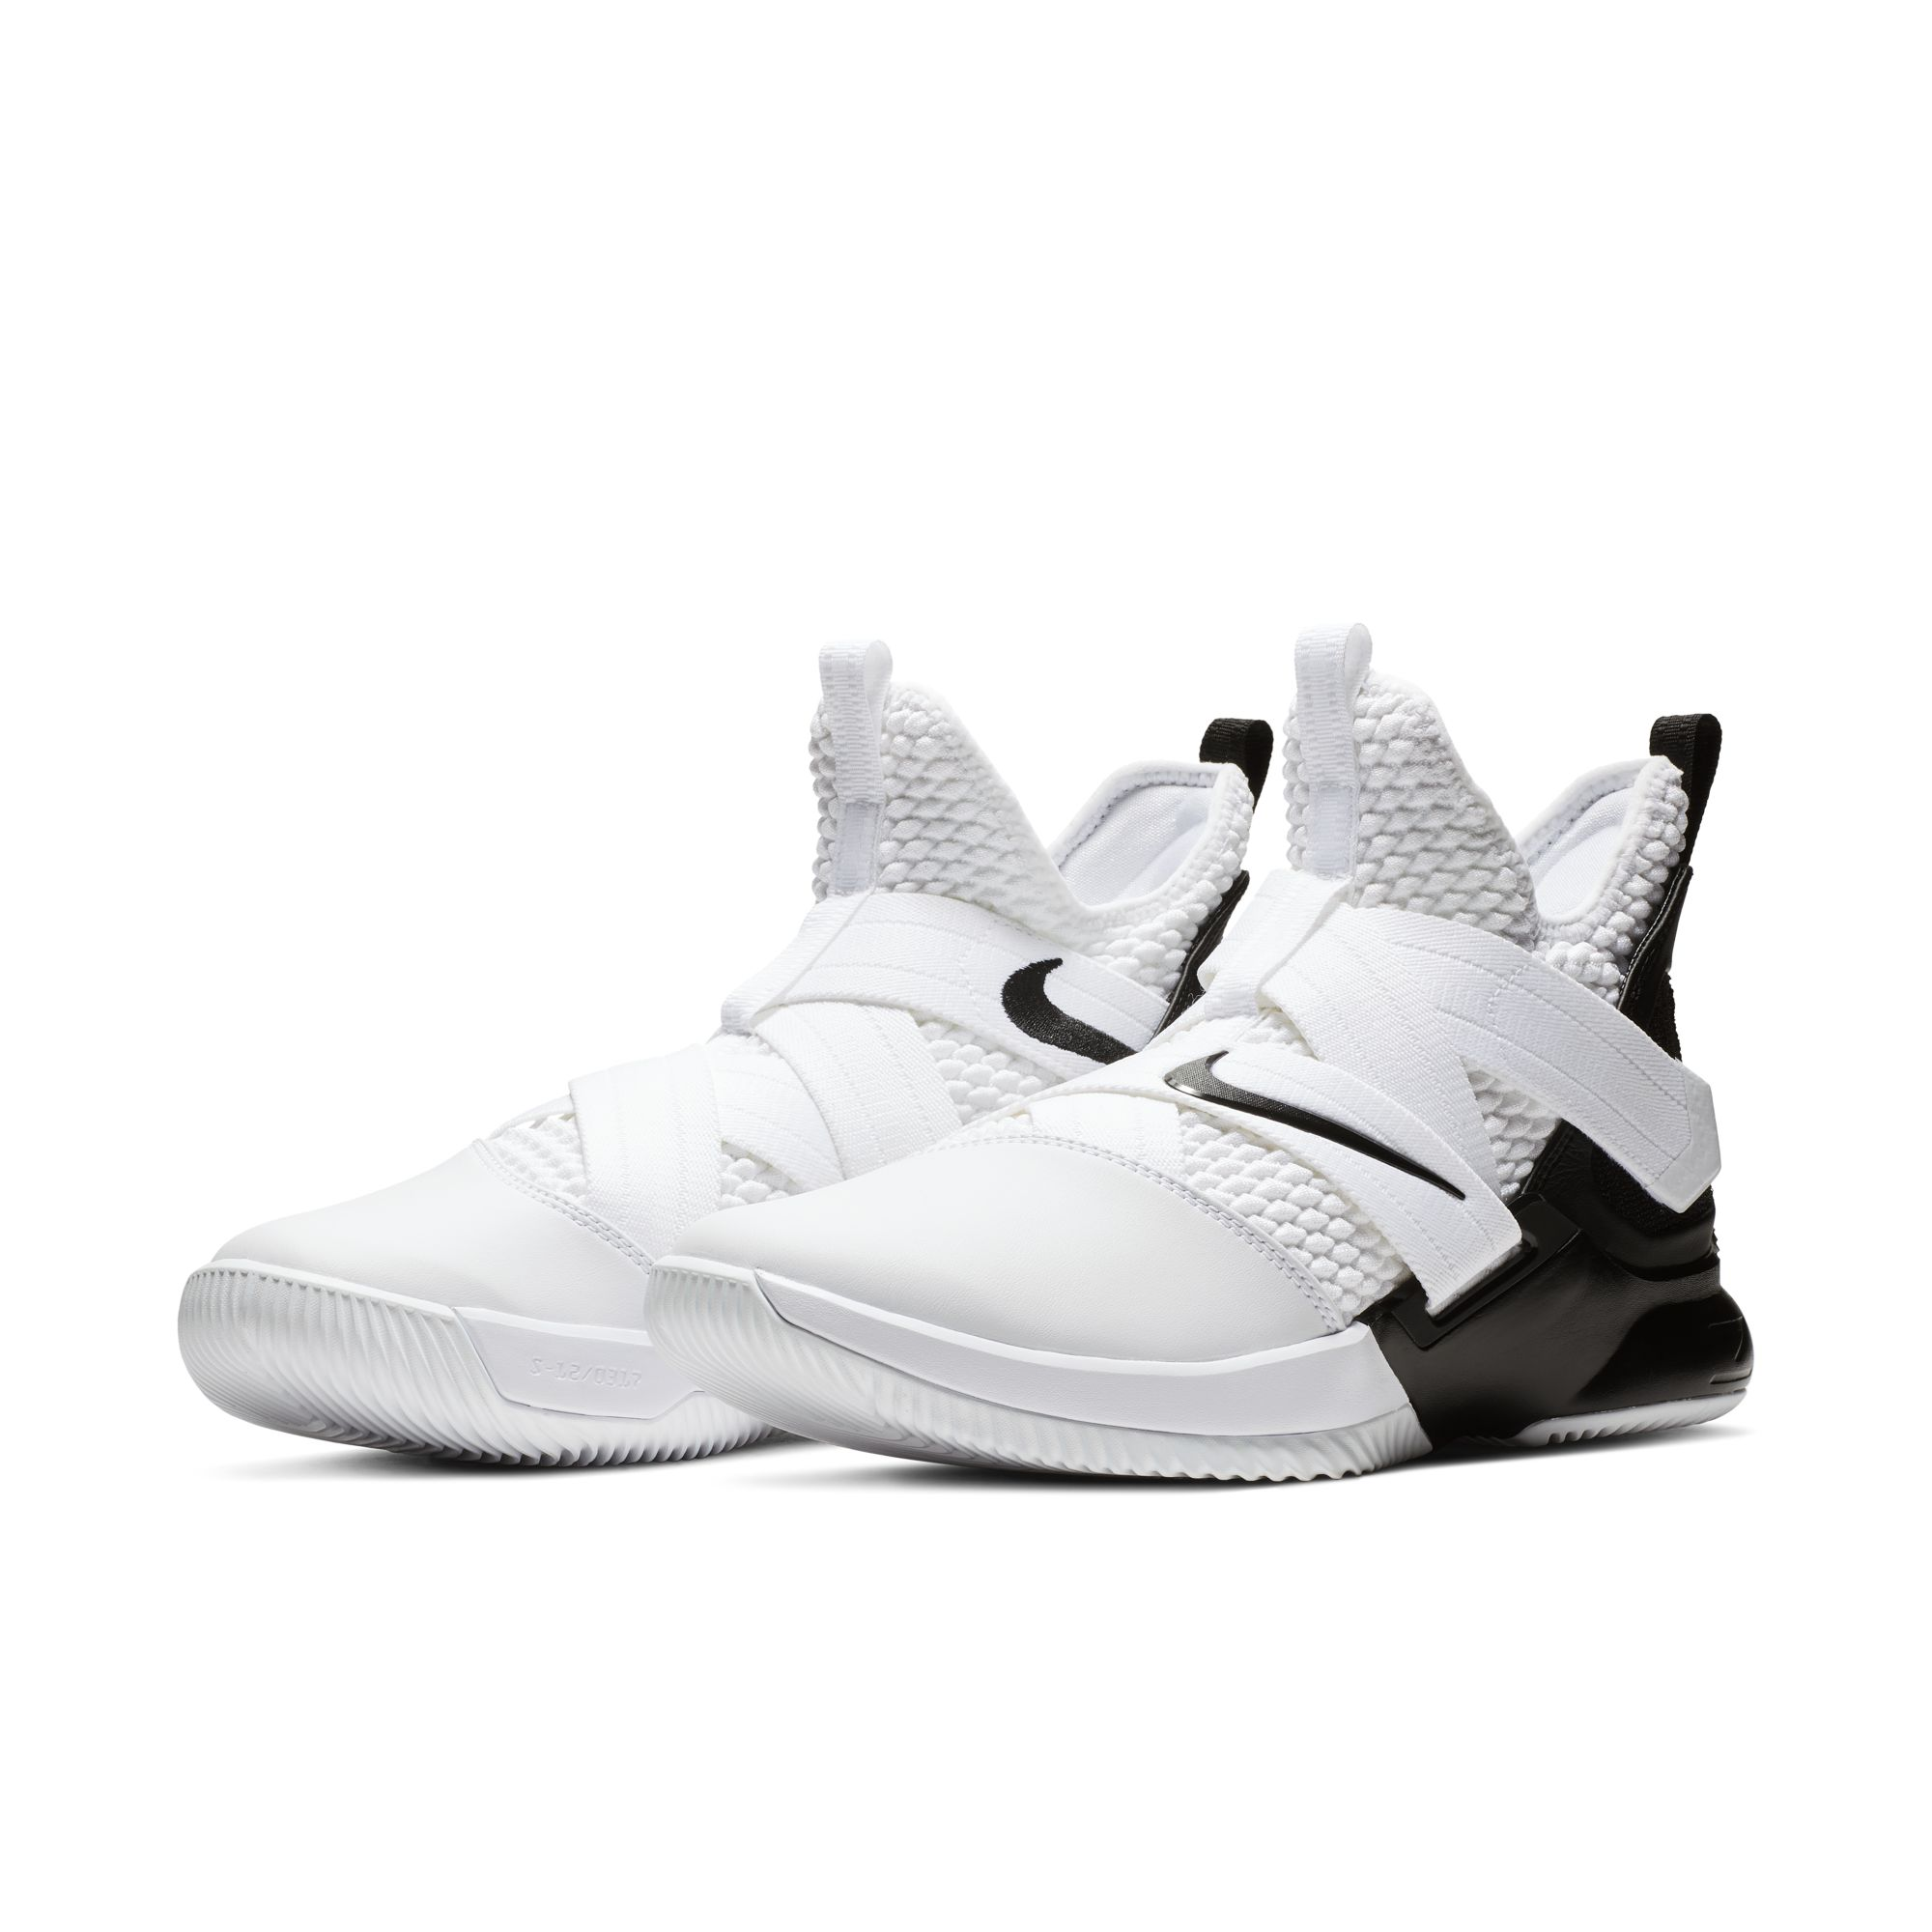 new arrivals d3ff7 777e5 nike lebron soldier 12 team - WearTesters